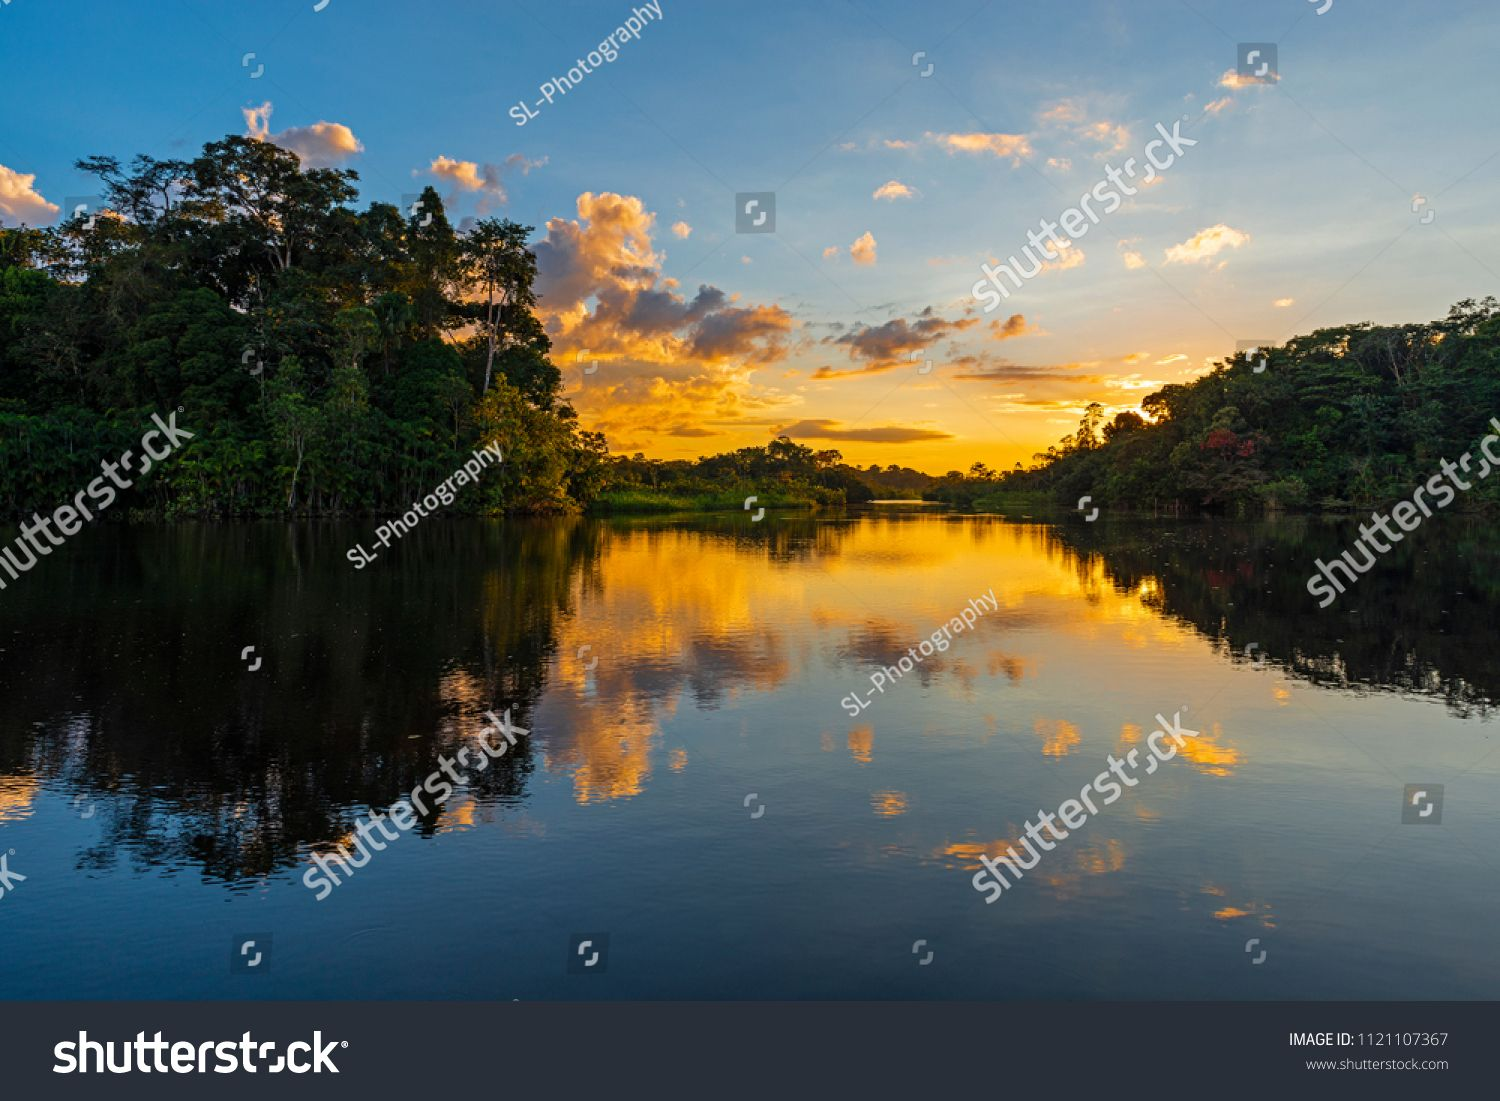 Sunset In The Amazon River Rainforest Basin With A Reflection In A